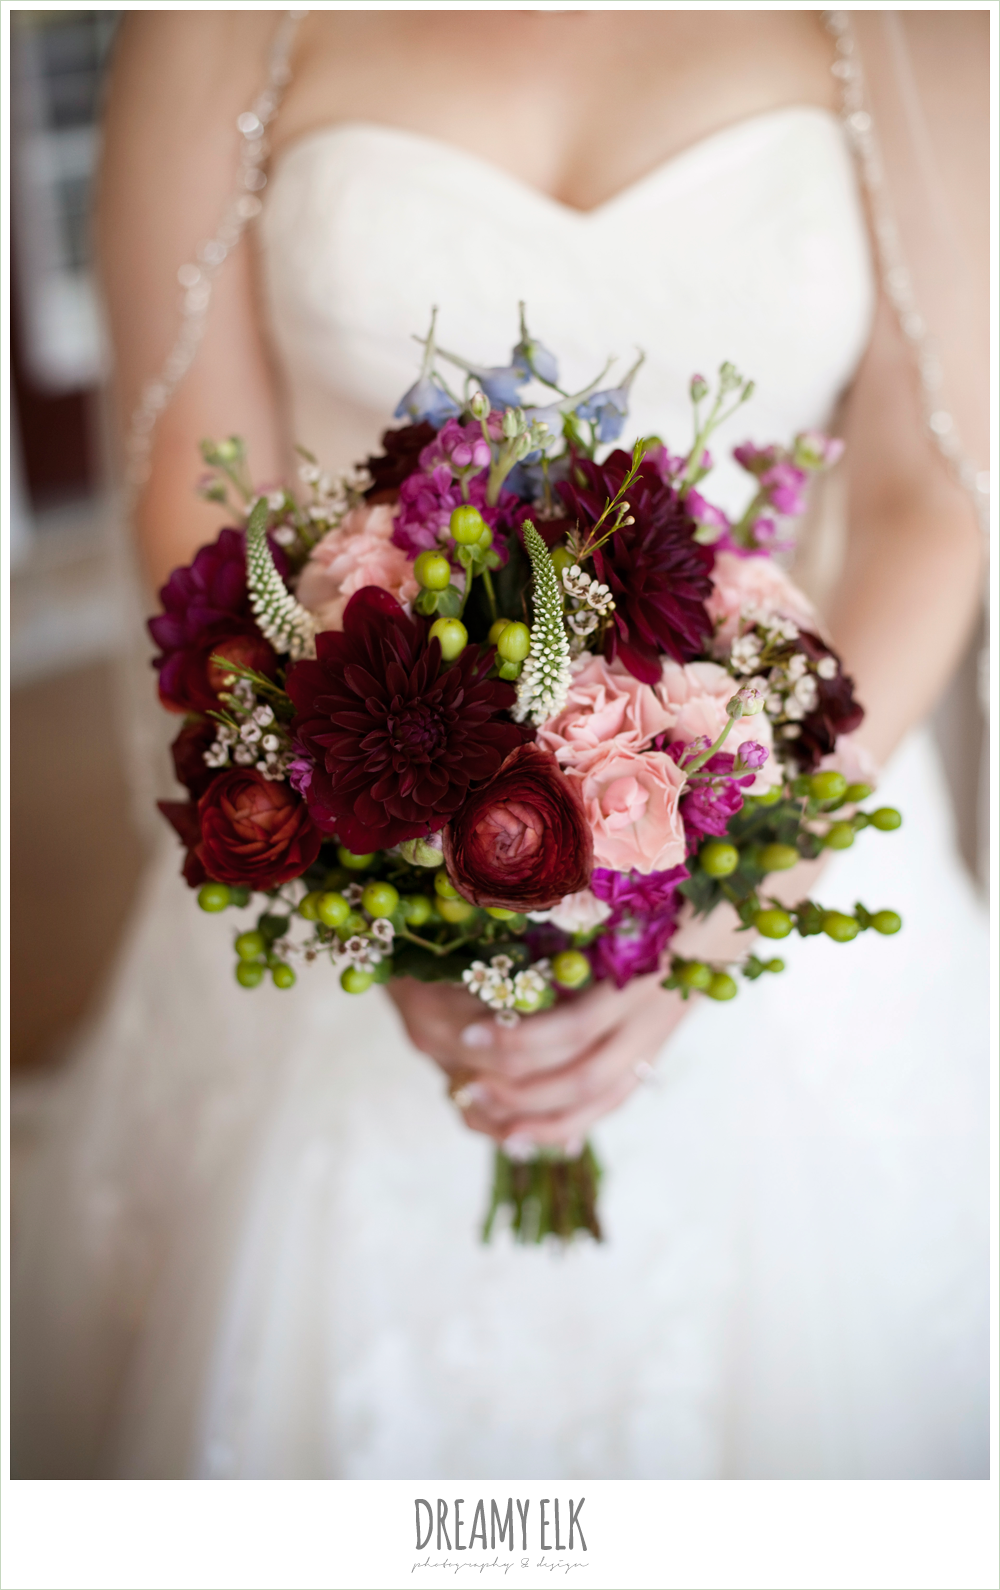 busy lil bee florals, fall wedding bouquet, dreamy elk photography and design